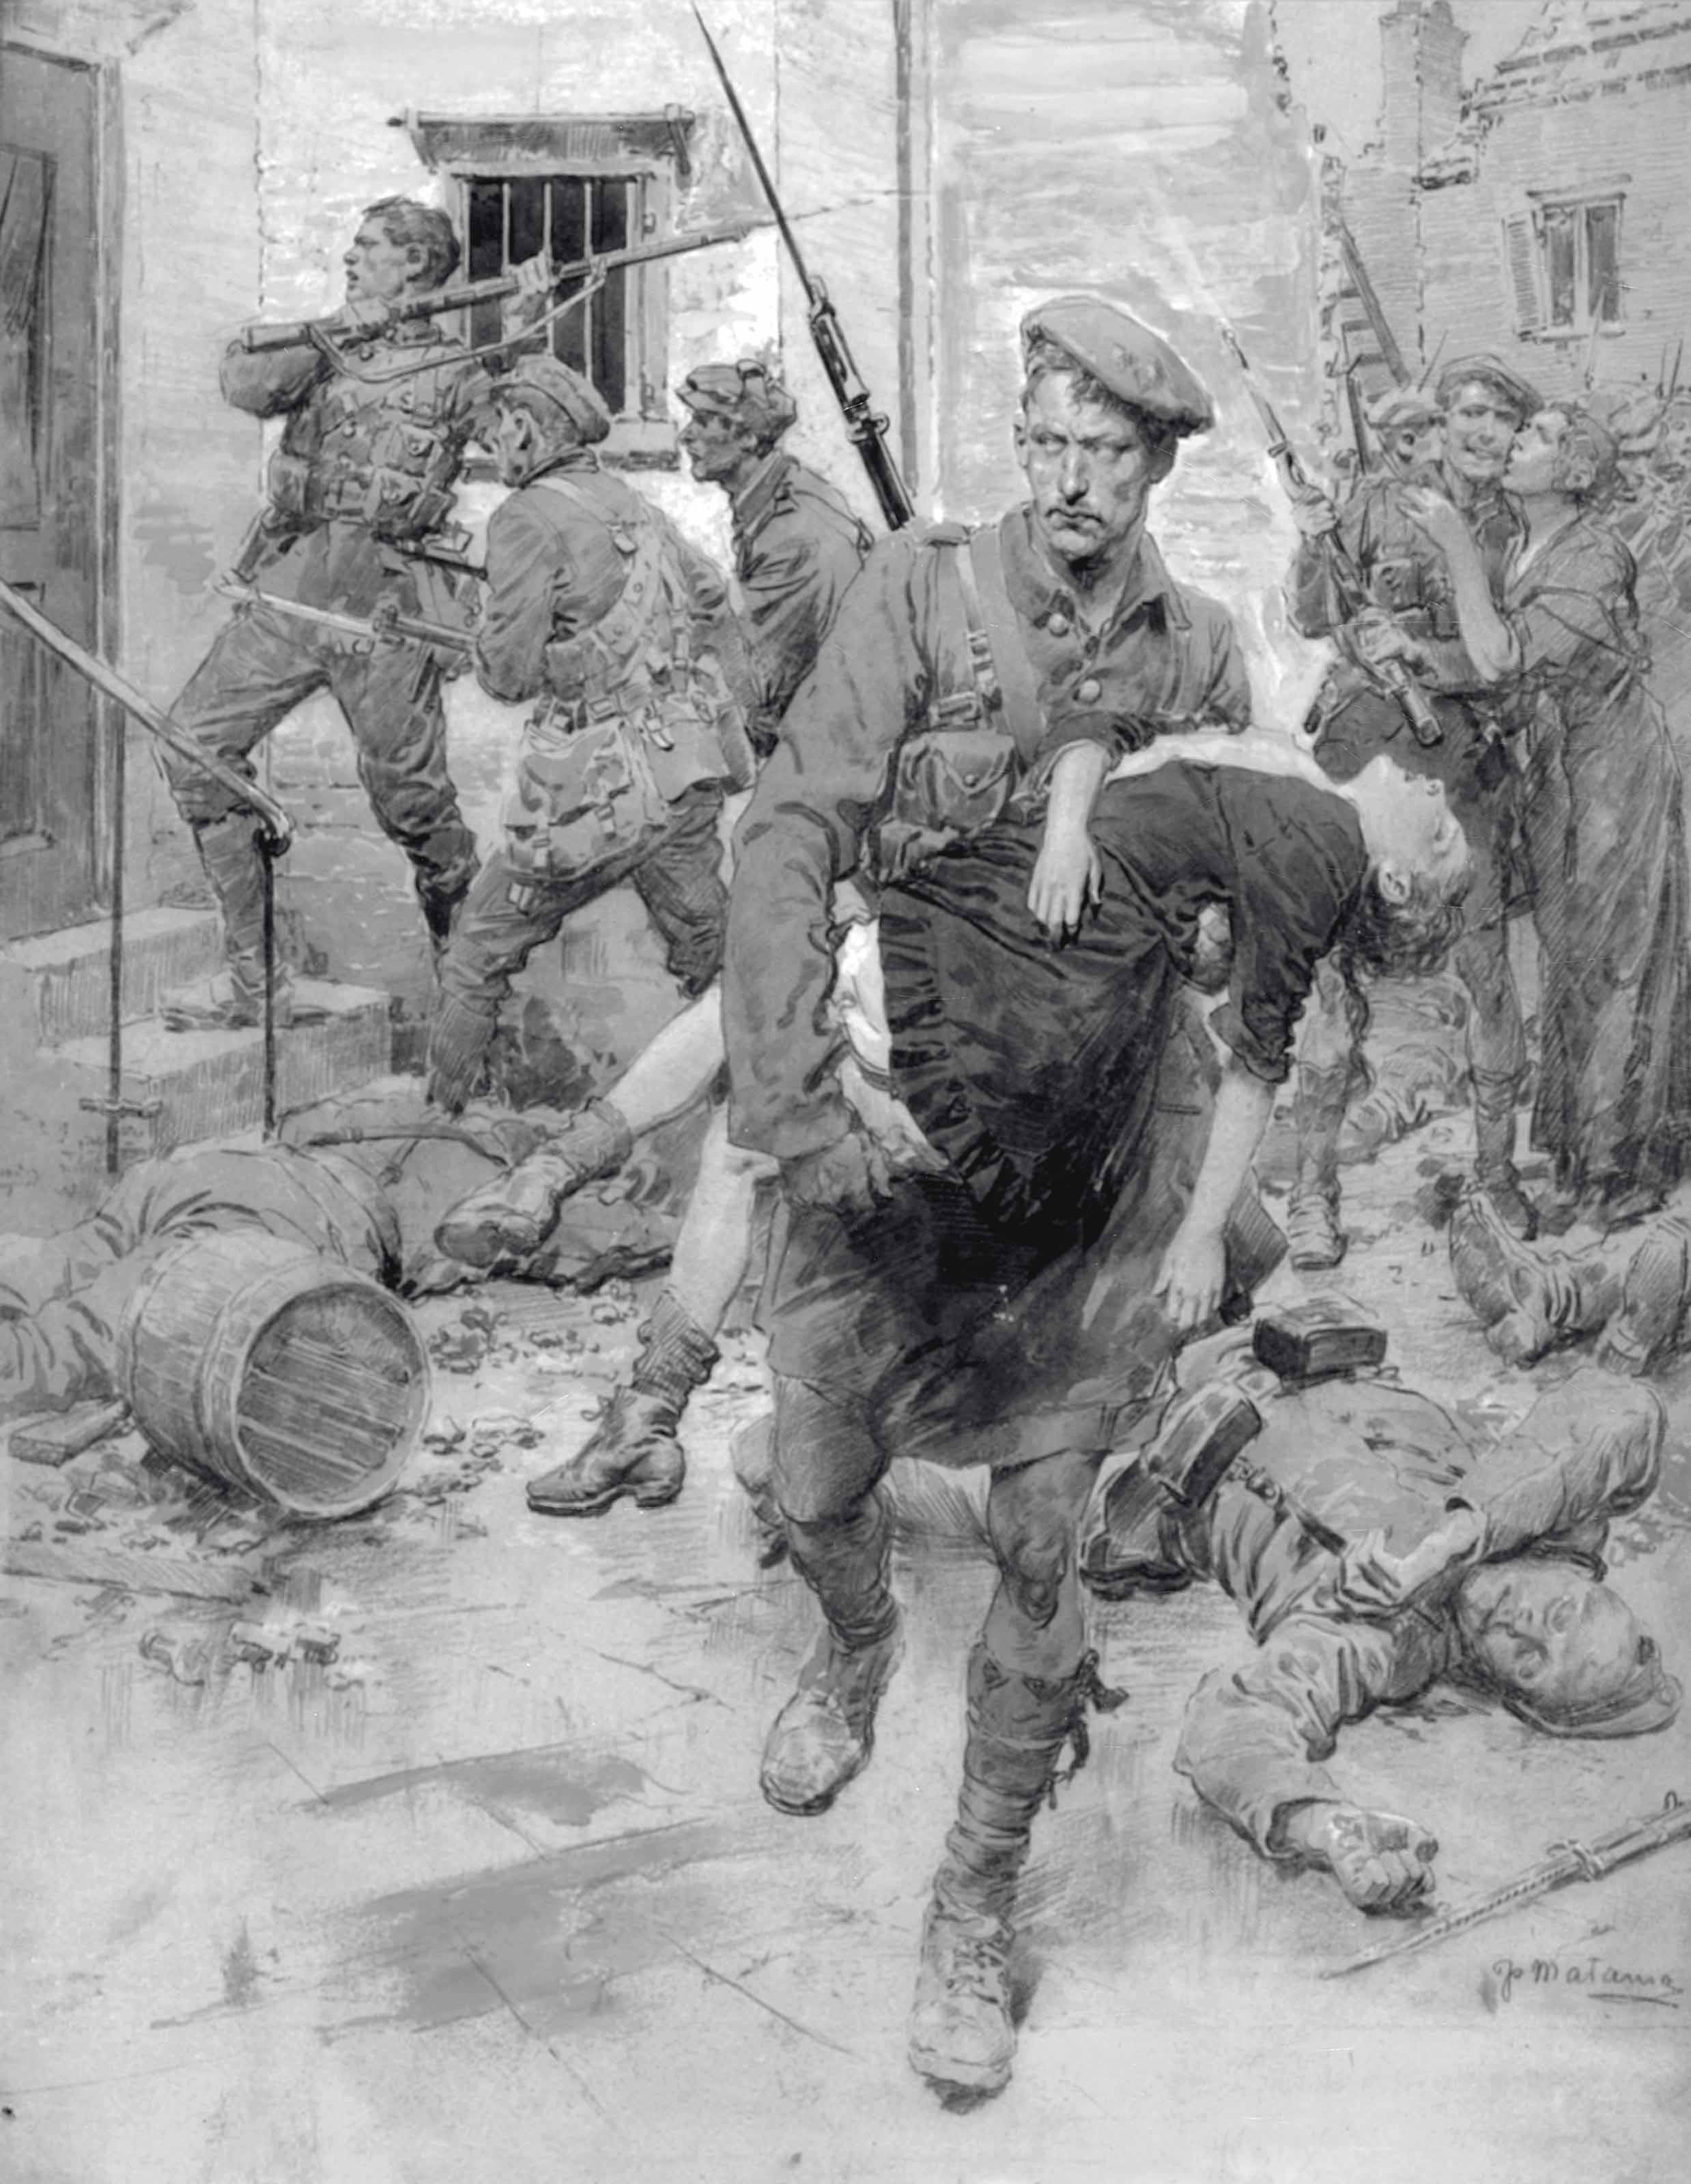 A Scottish regiment in the village of Loos rescuing a little French maiden (illustrated); The returned soldier as munition worker; and The piercing of the German fortified defensive line on the Somme: Cleaning out a dug-out for 800 men after the advance on the Western Front